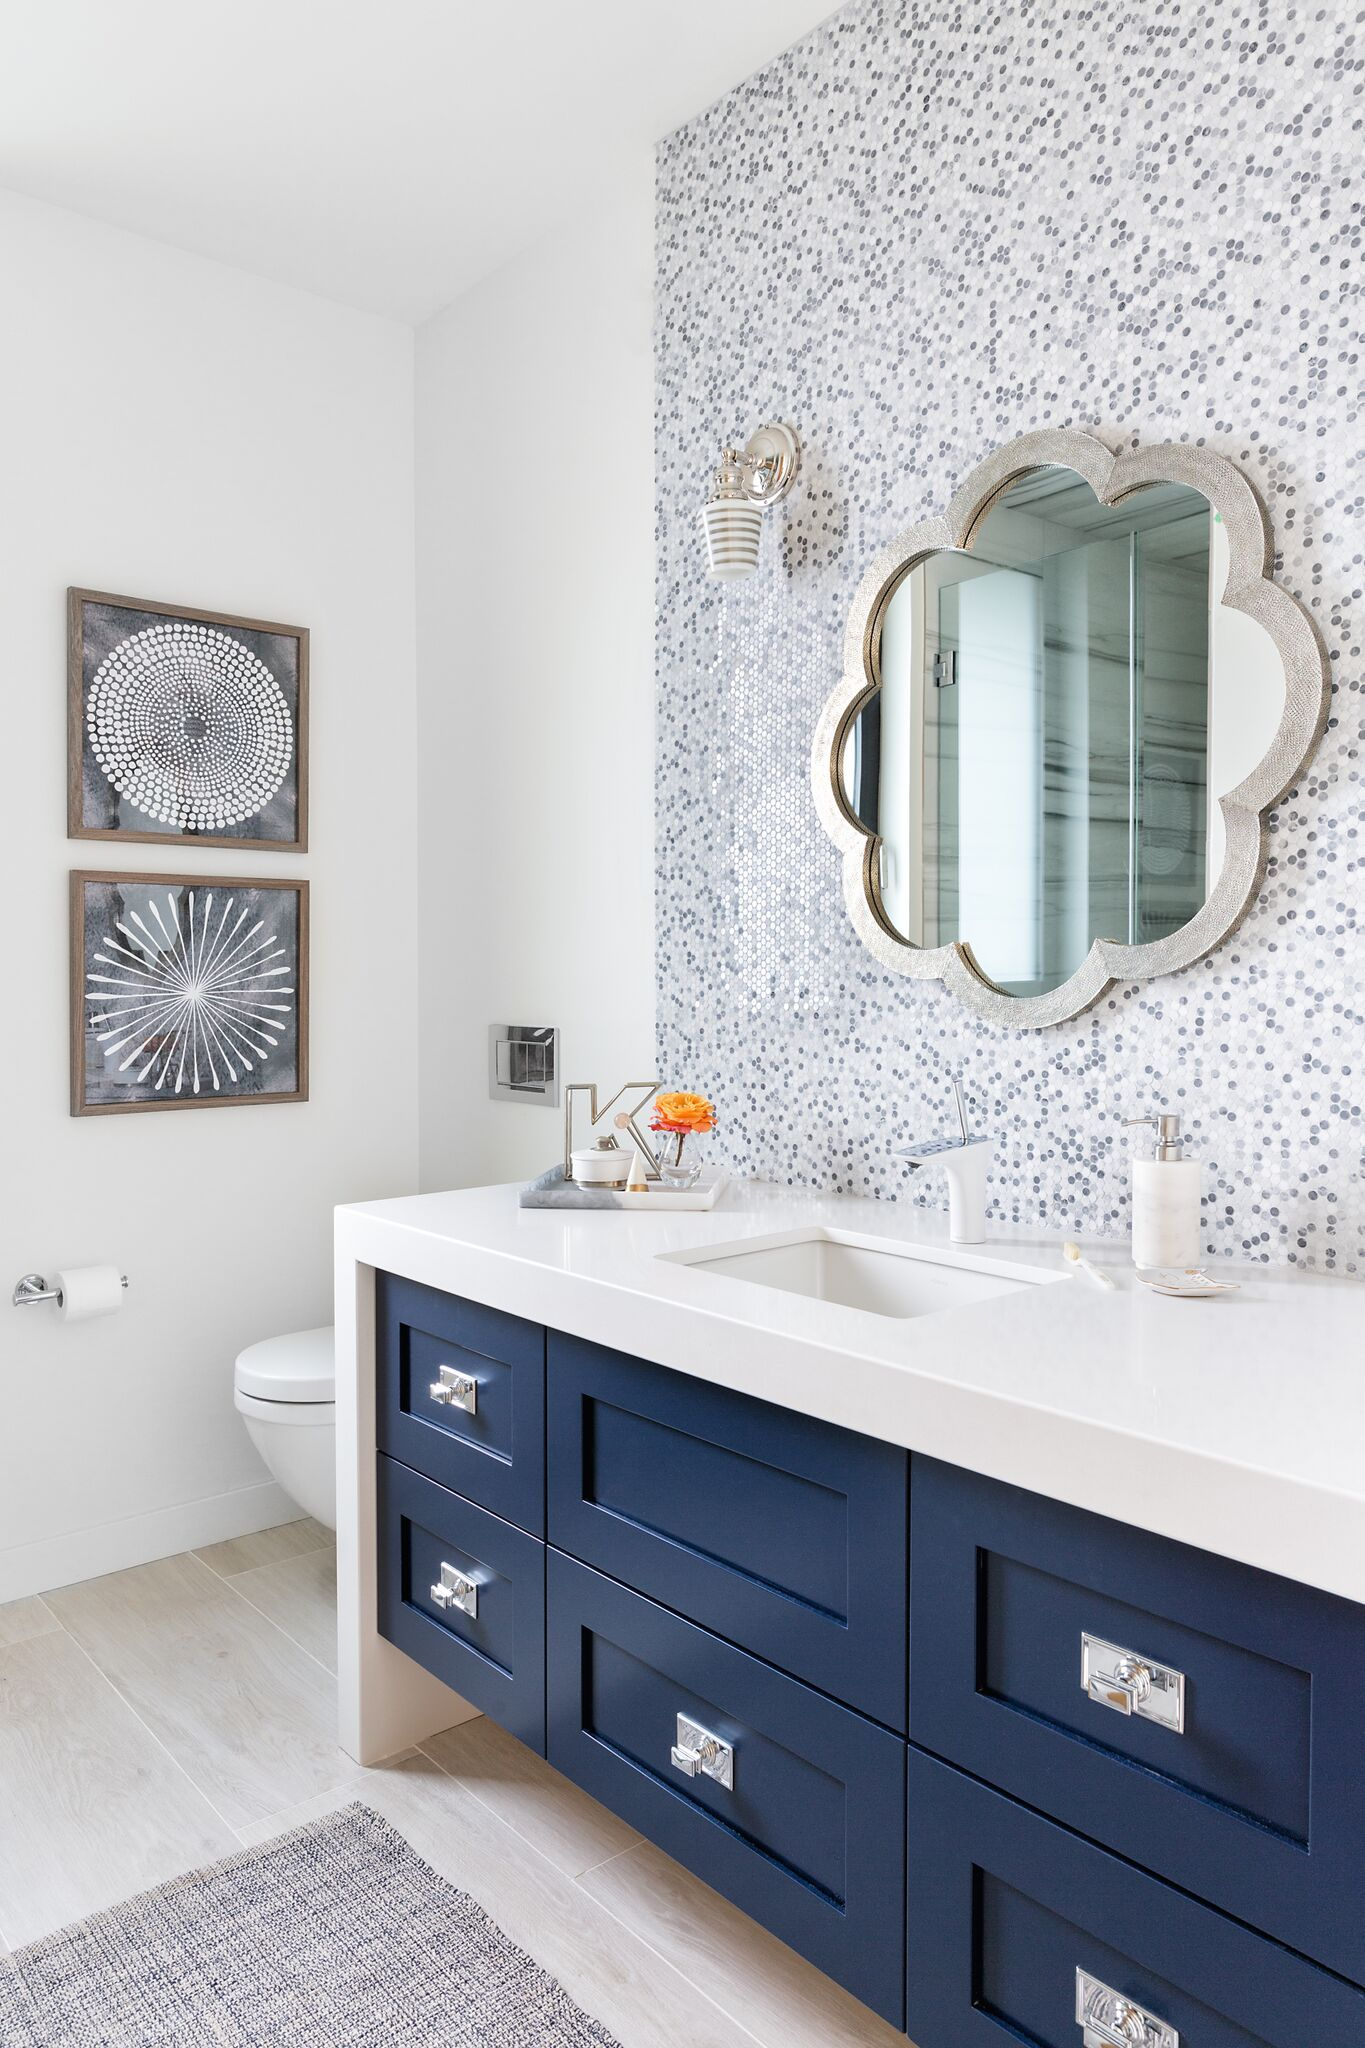 Girls Ensuite Bathroom, Navy Vanity With Shades Of Grey And